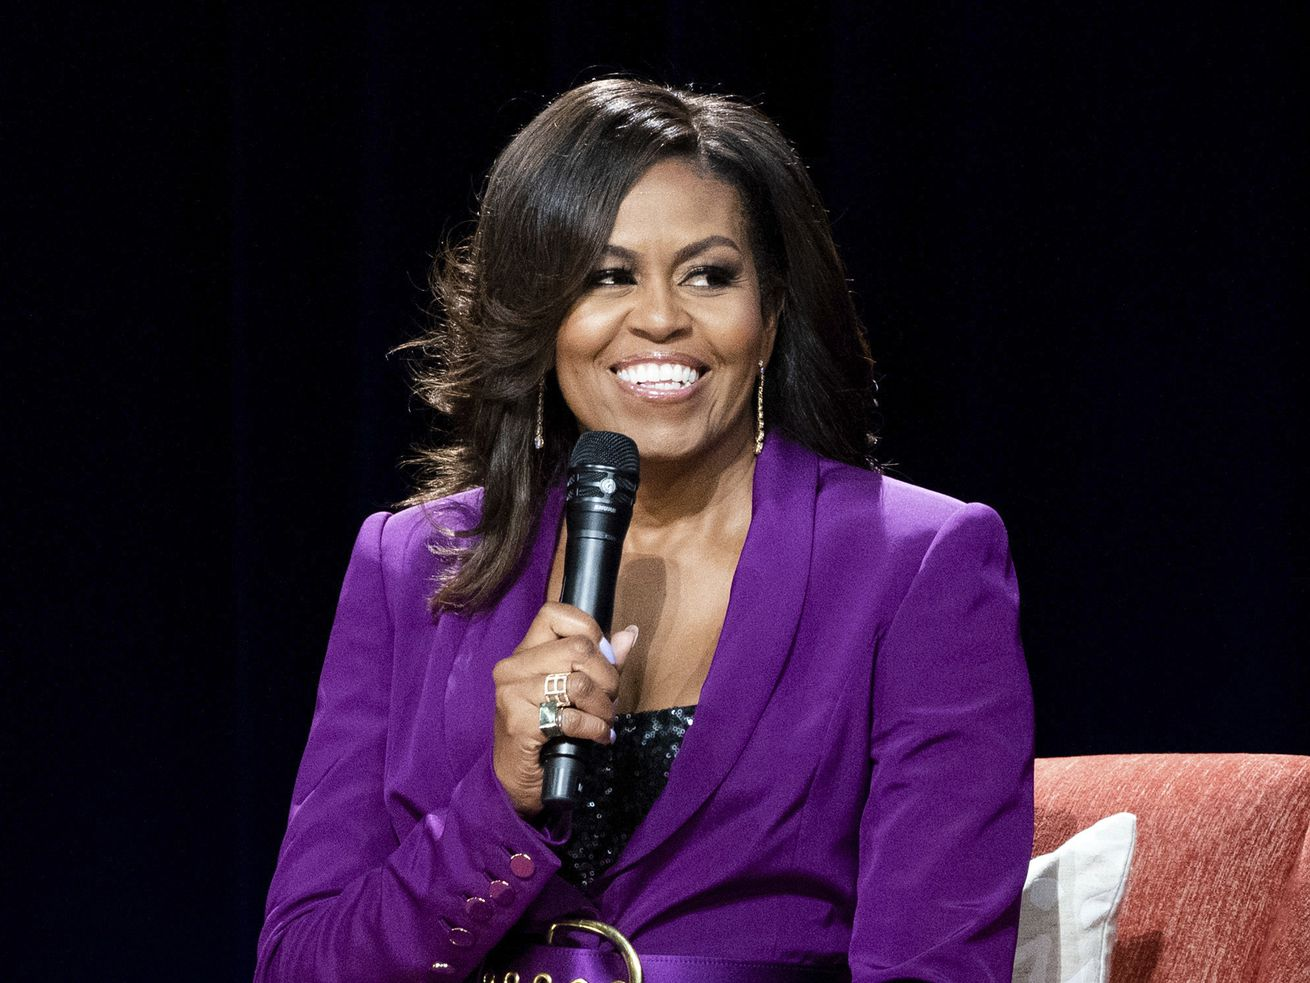 In this 2019 file photo, former first lady Michelle Obama speaks during an appearance in Atlanta.